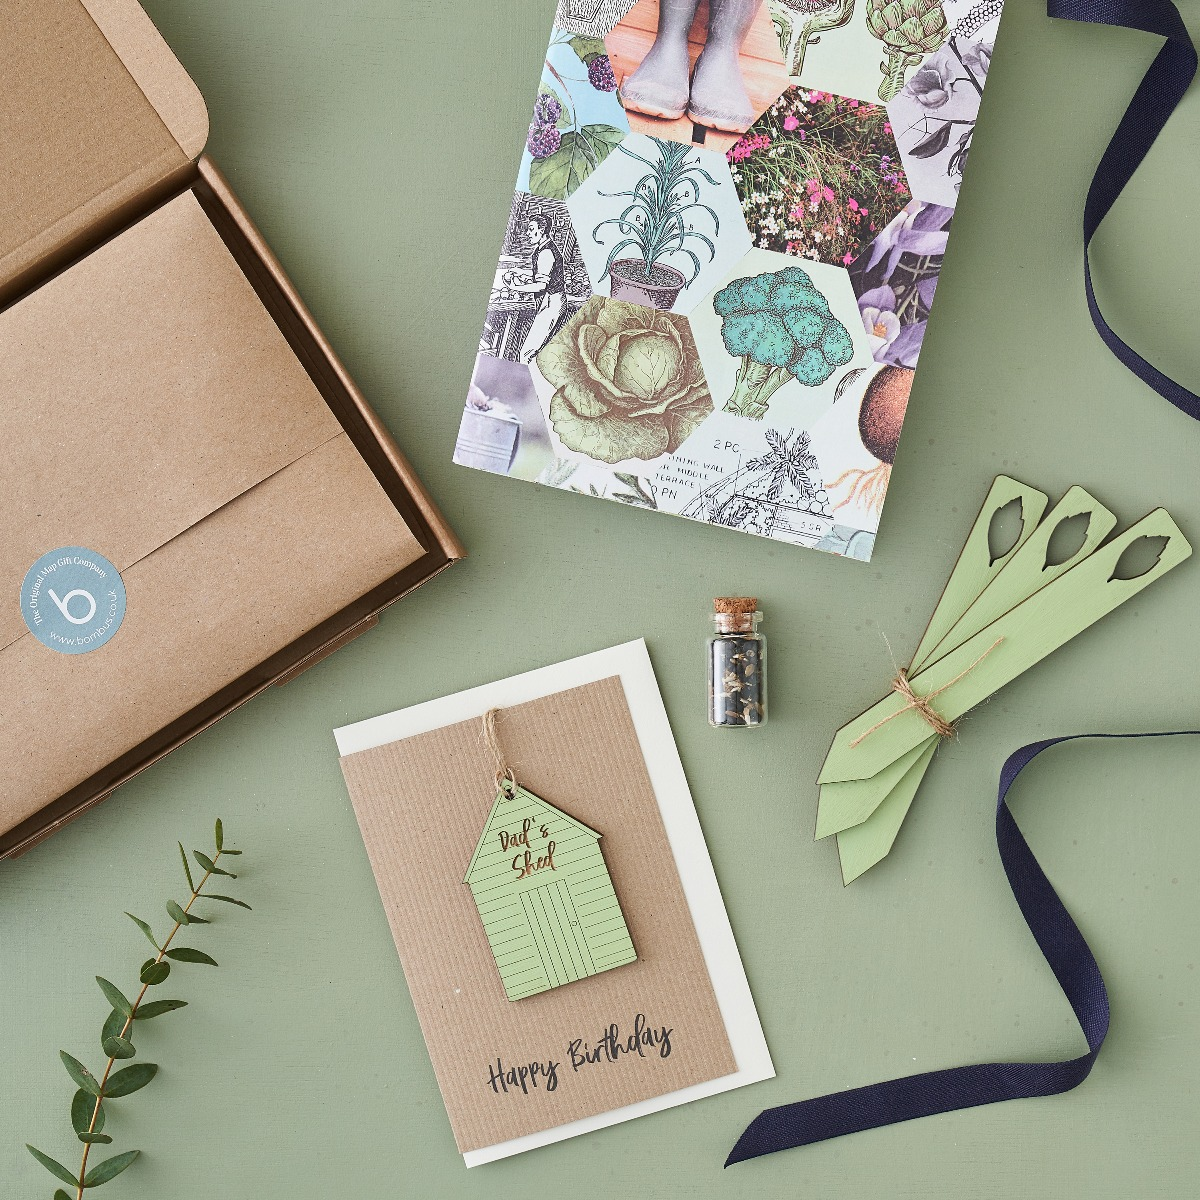 Gardeners Letterbox Gift set with card, notebooks, and gifts.